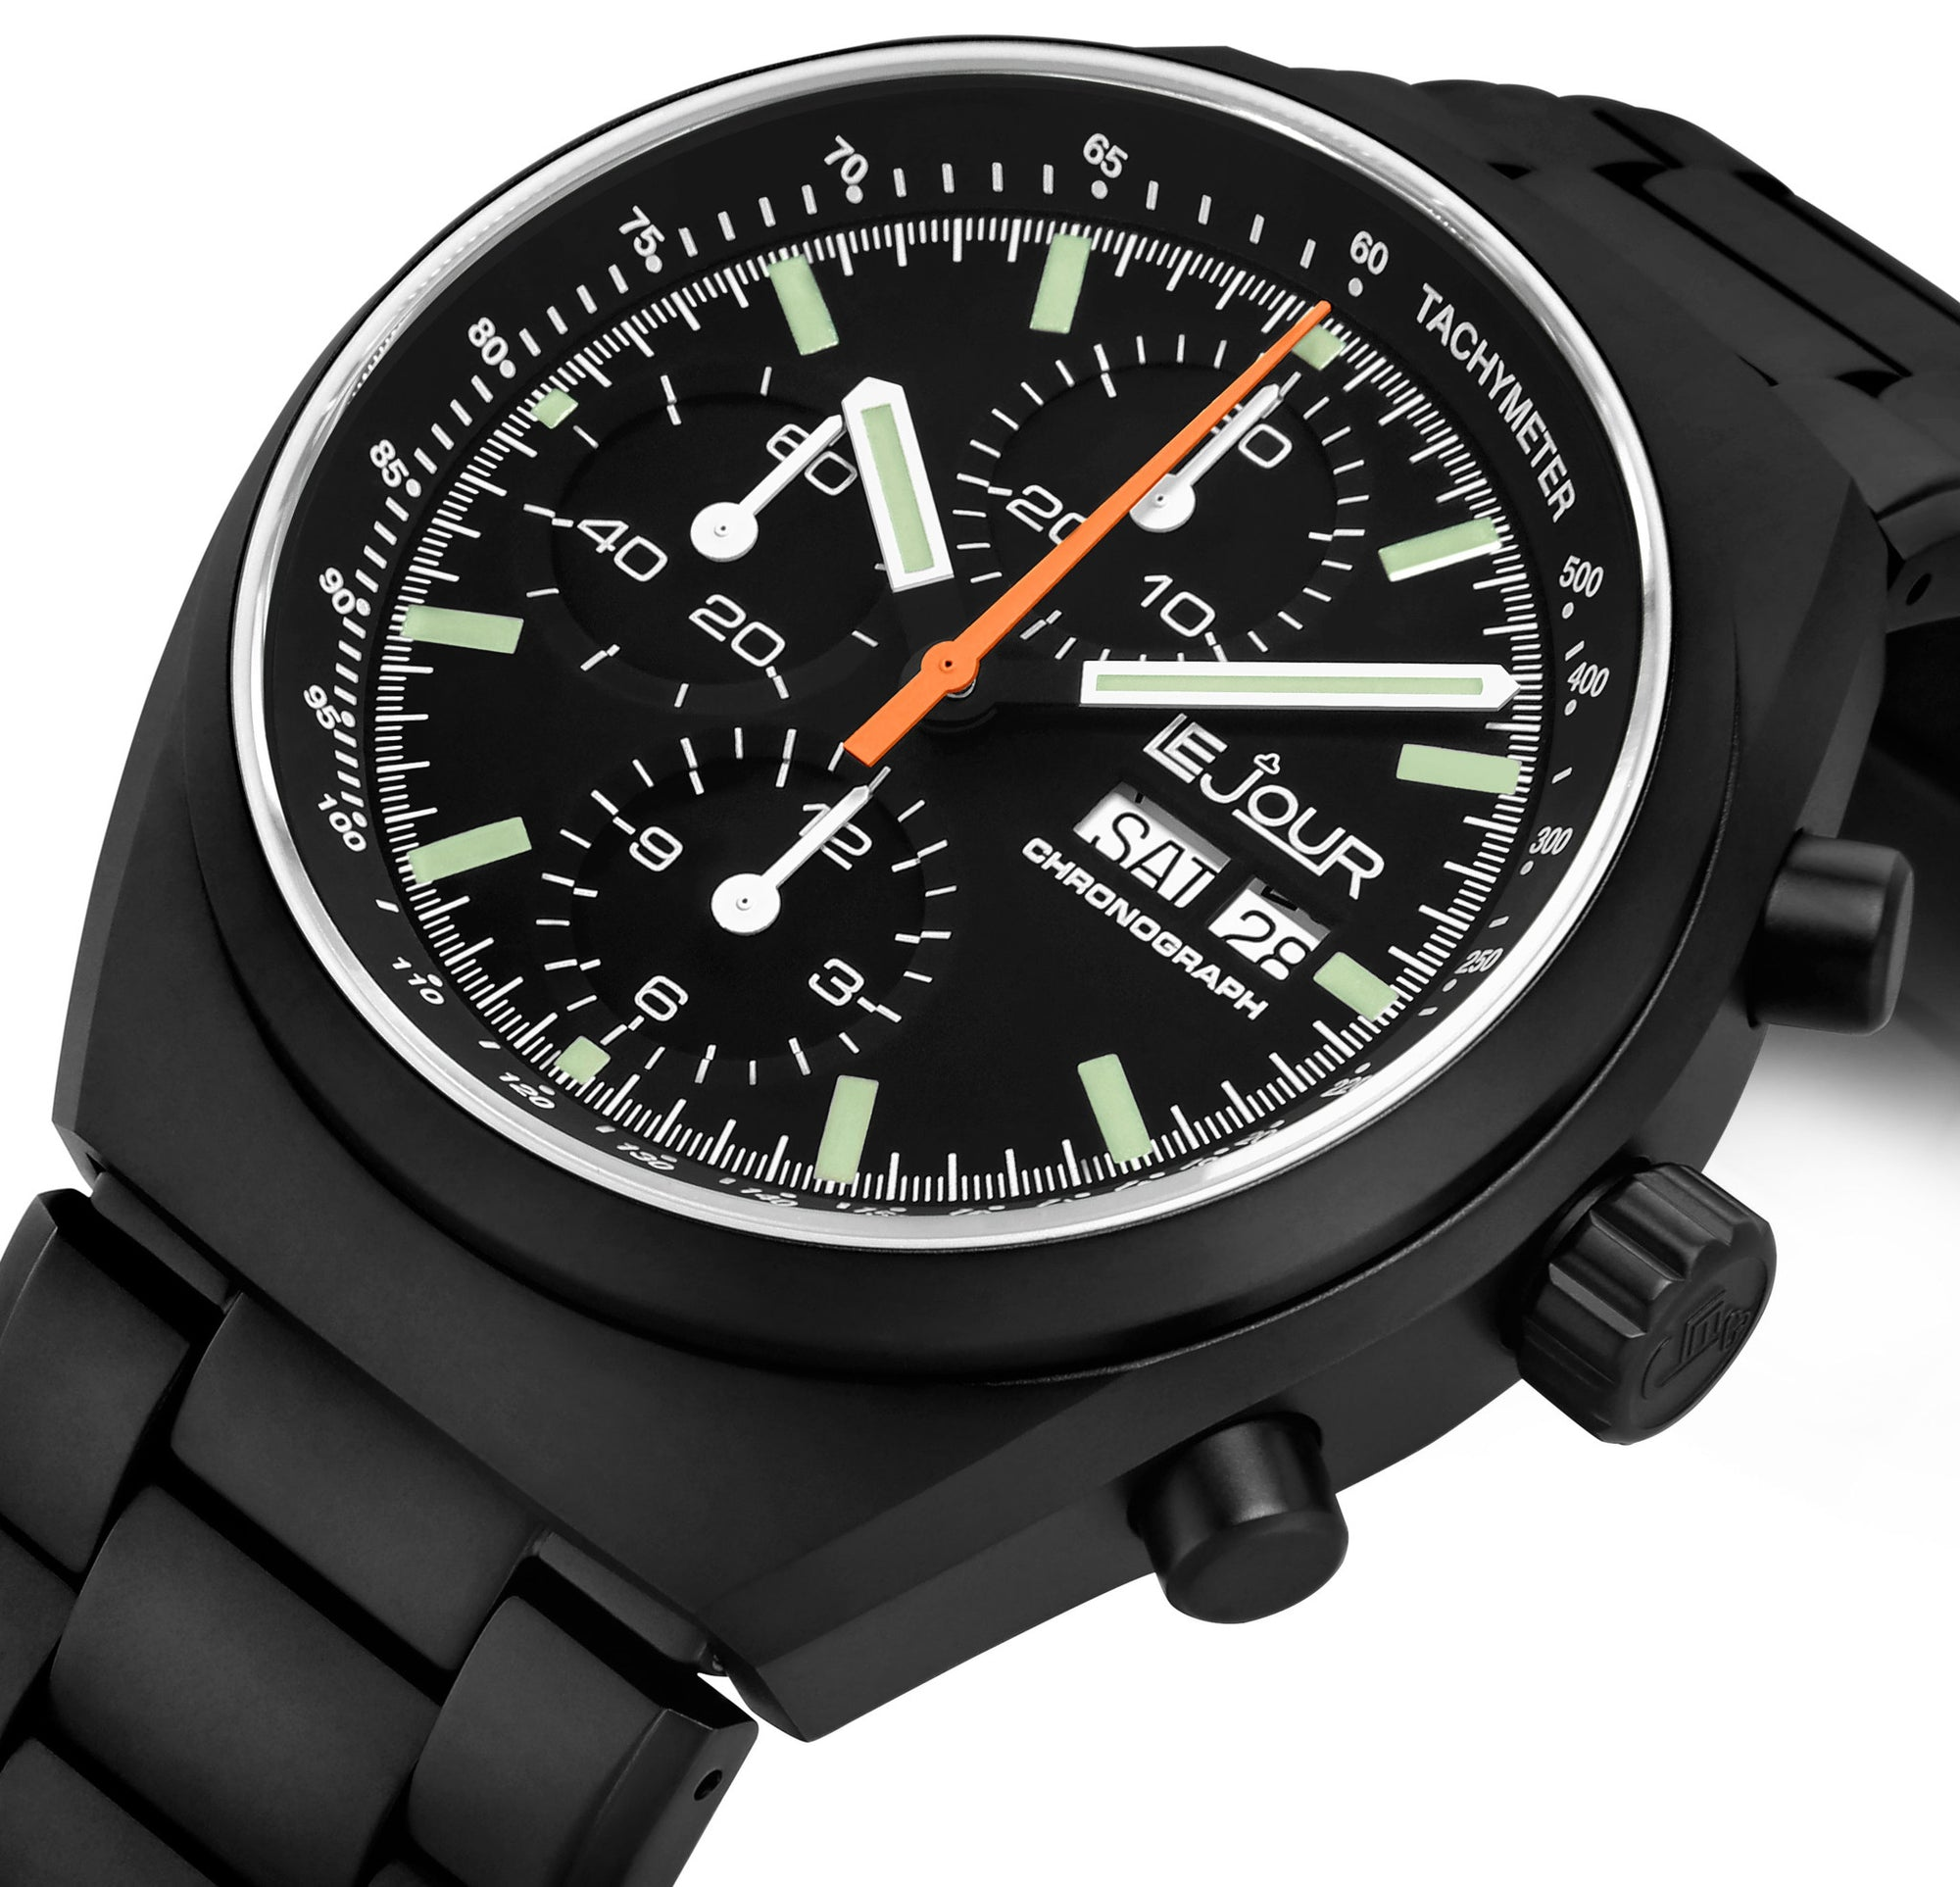 Le Jour Chronograph Watch